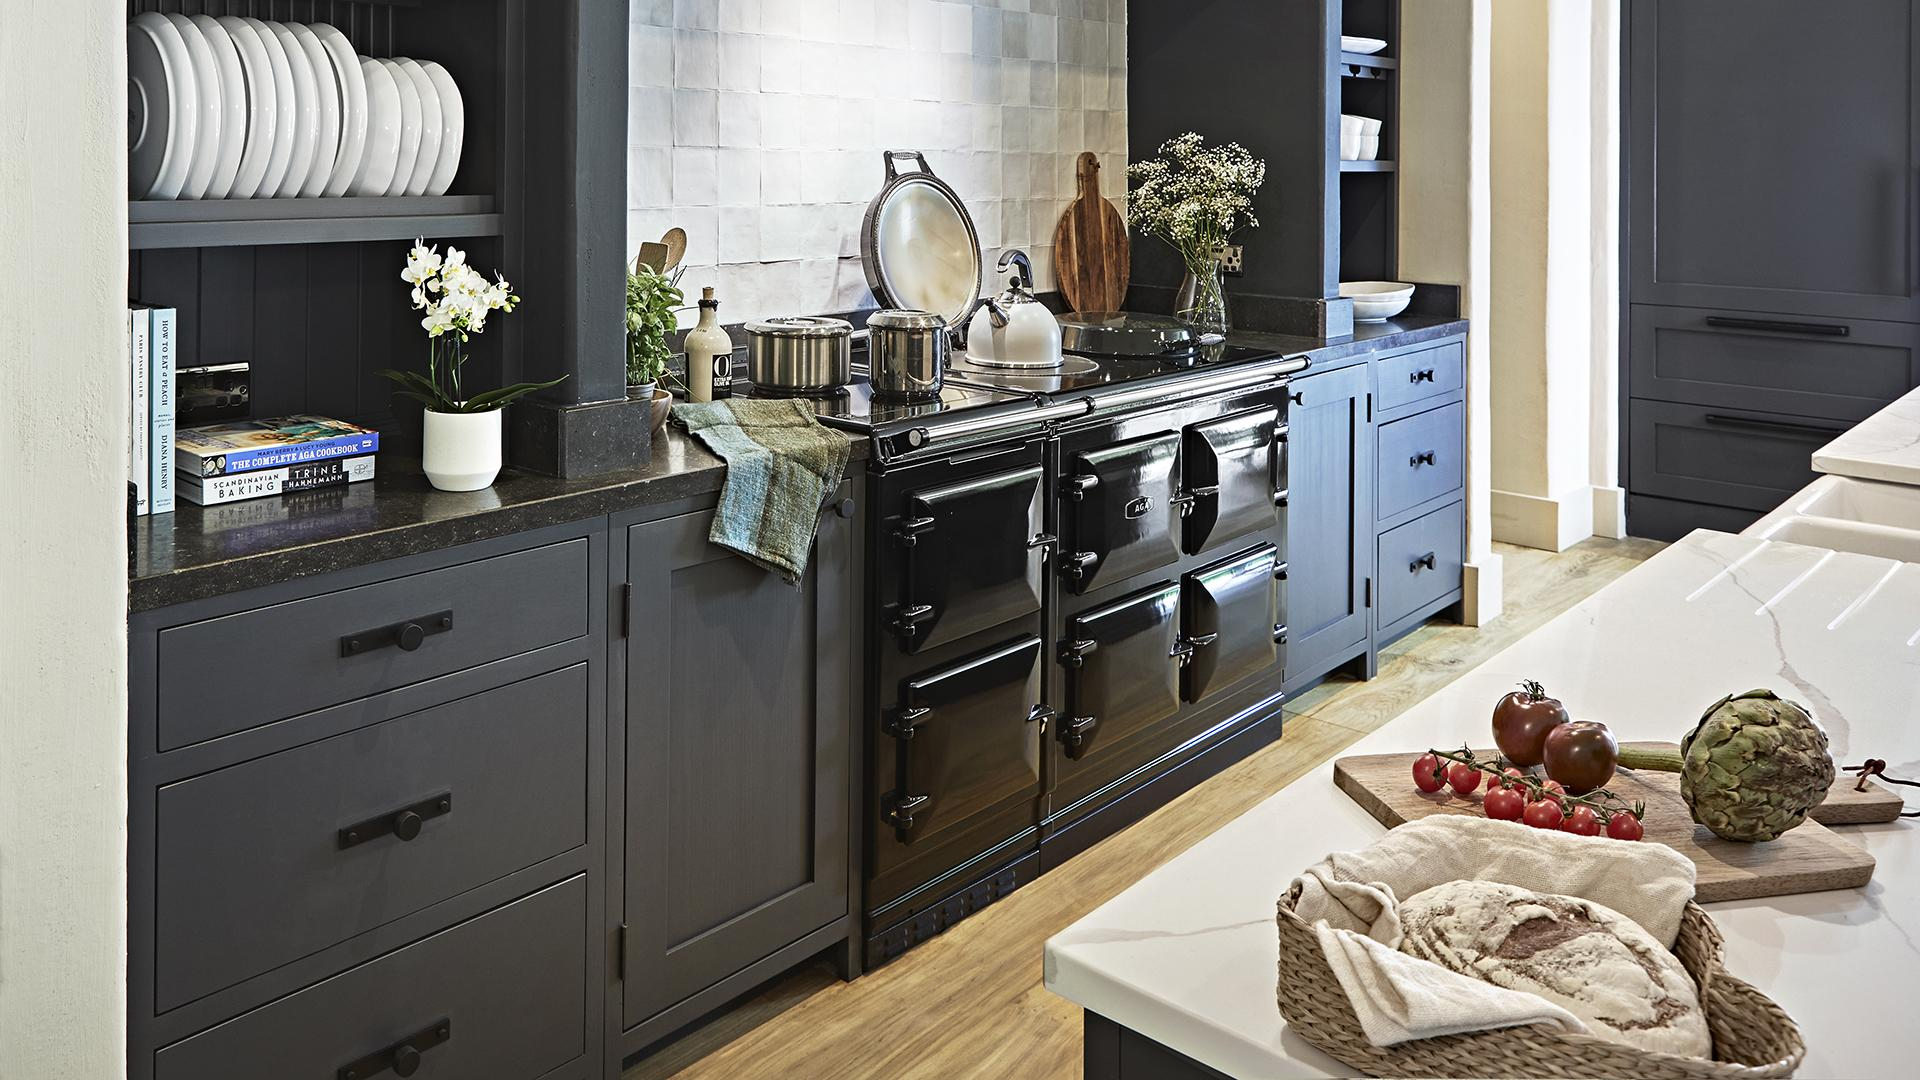 AGA 7 Series 150 cooker in Black with blue cabinetry